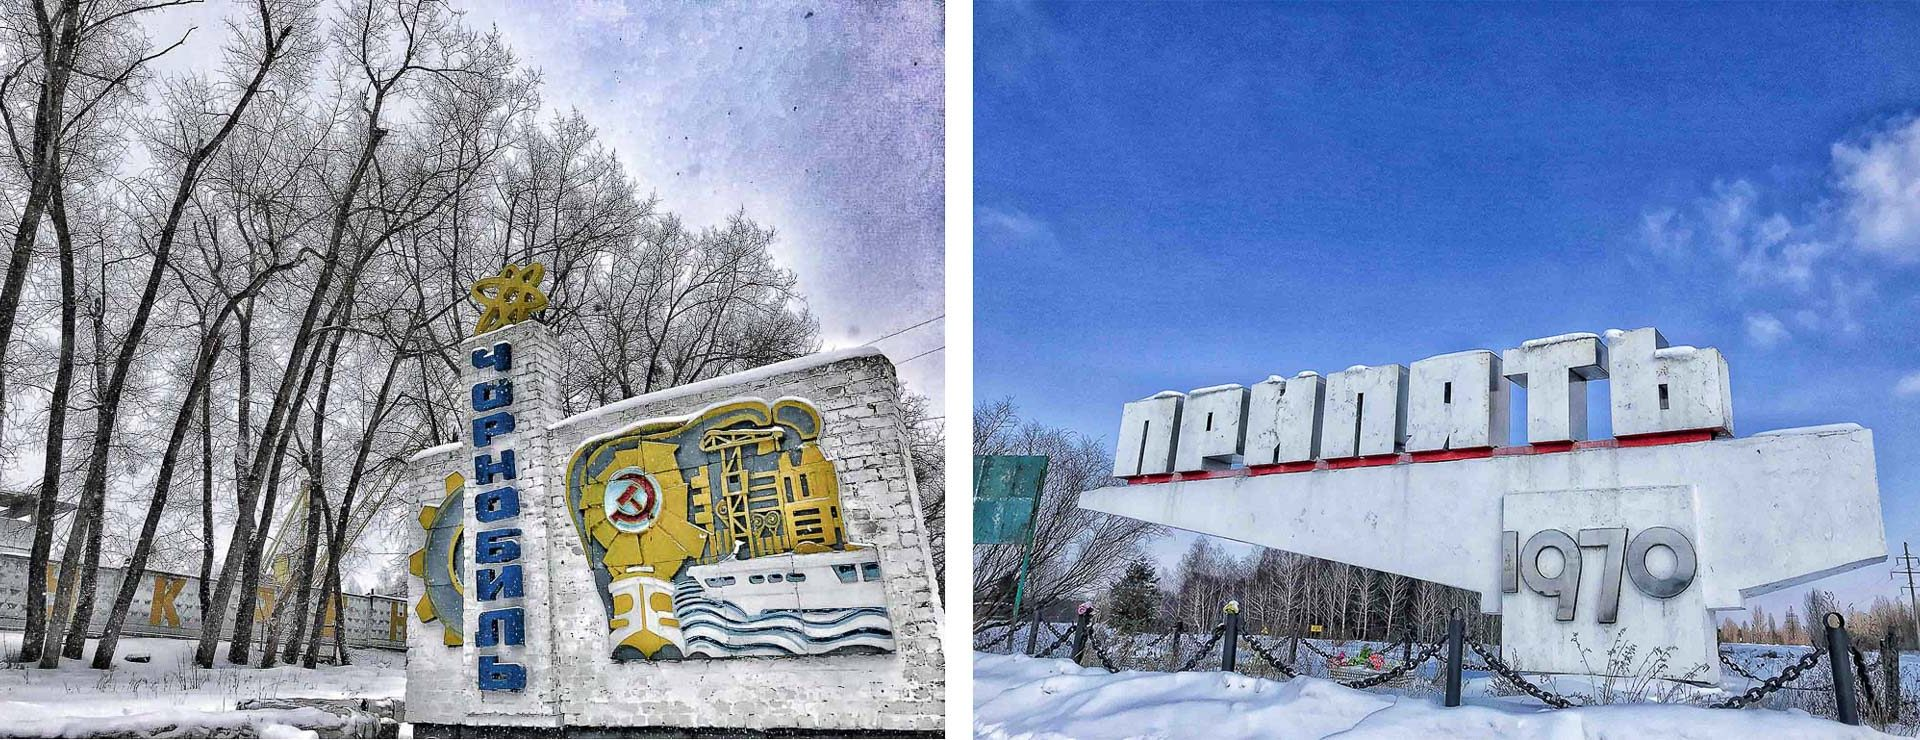 Signs mark the entry to the Chernobyl Exclusion zone (left) and the town of Pripyat (right).